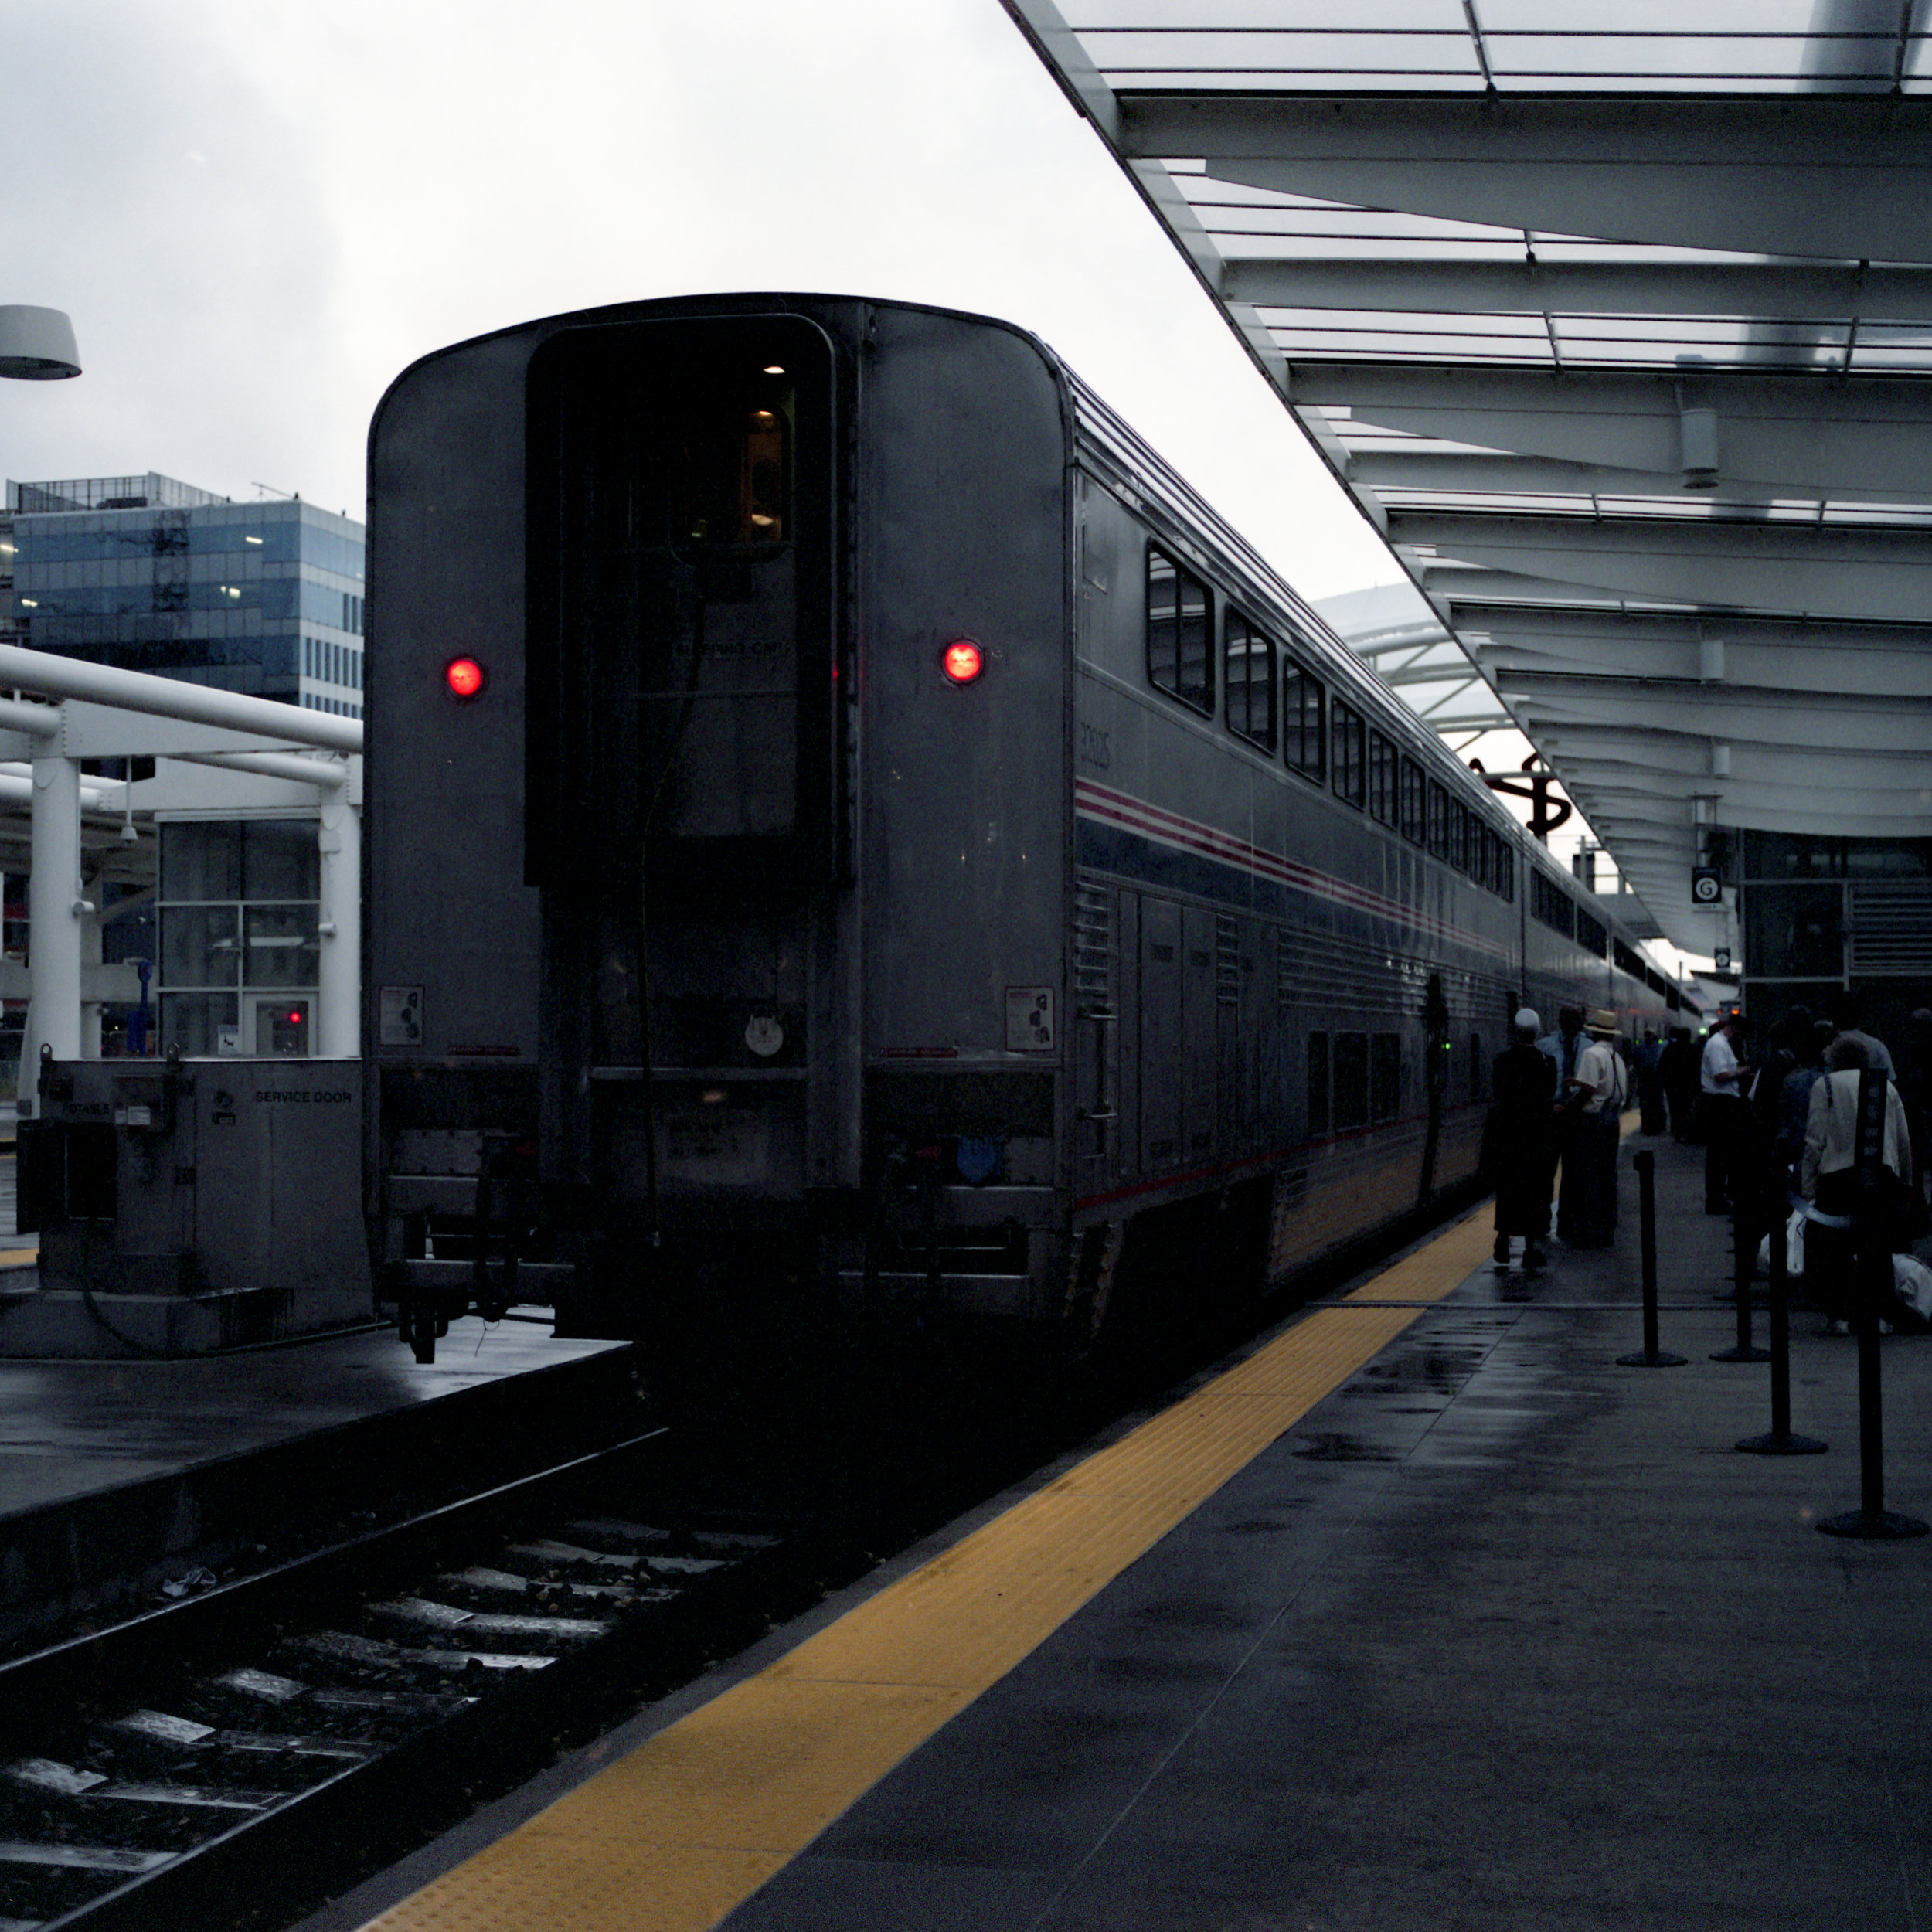 Our train at the Denver station